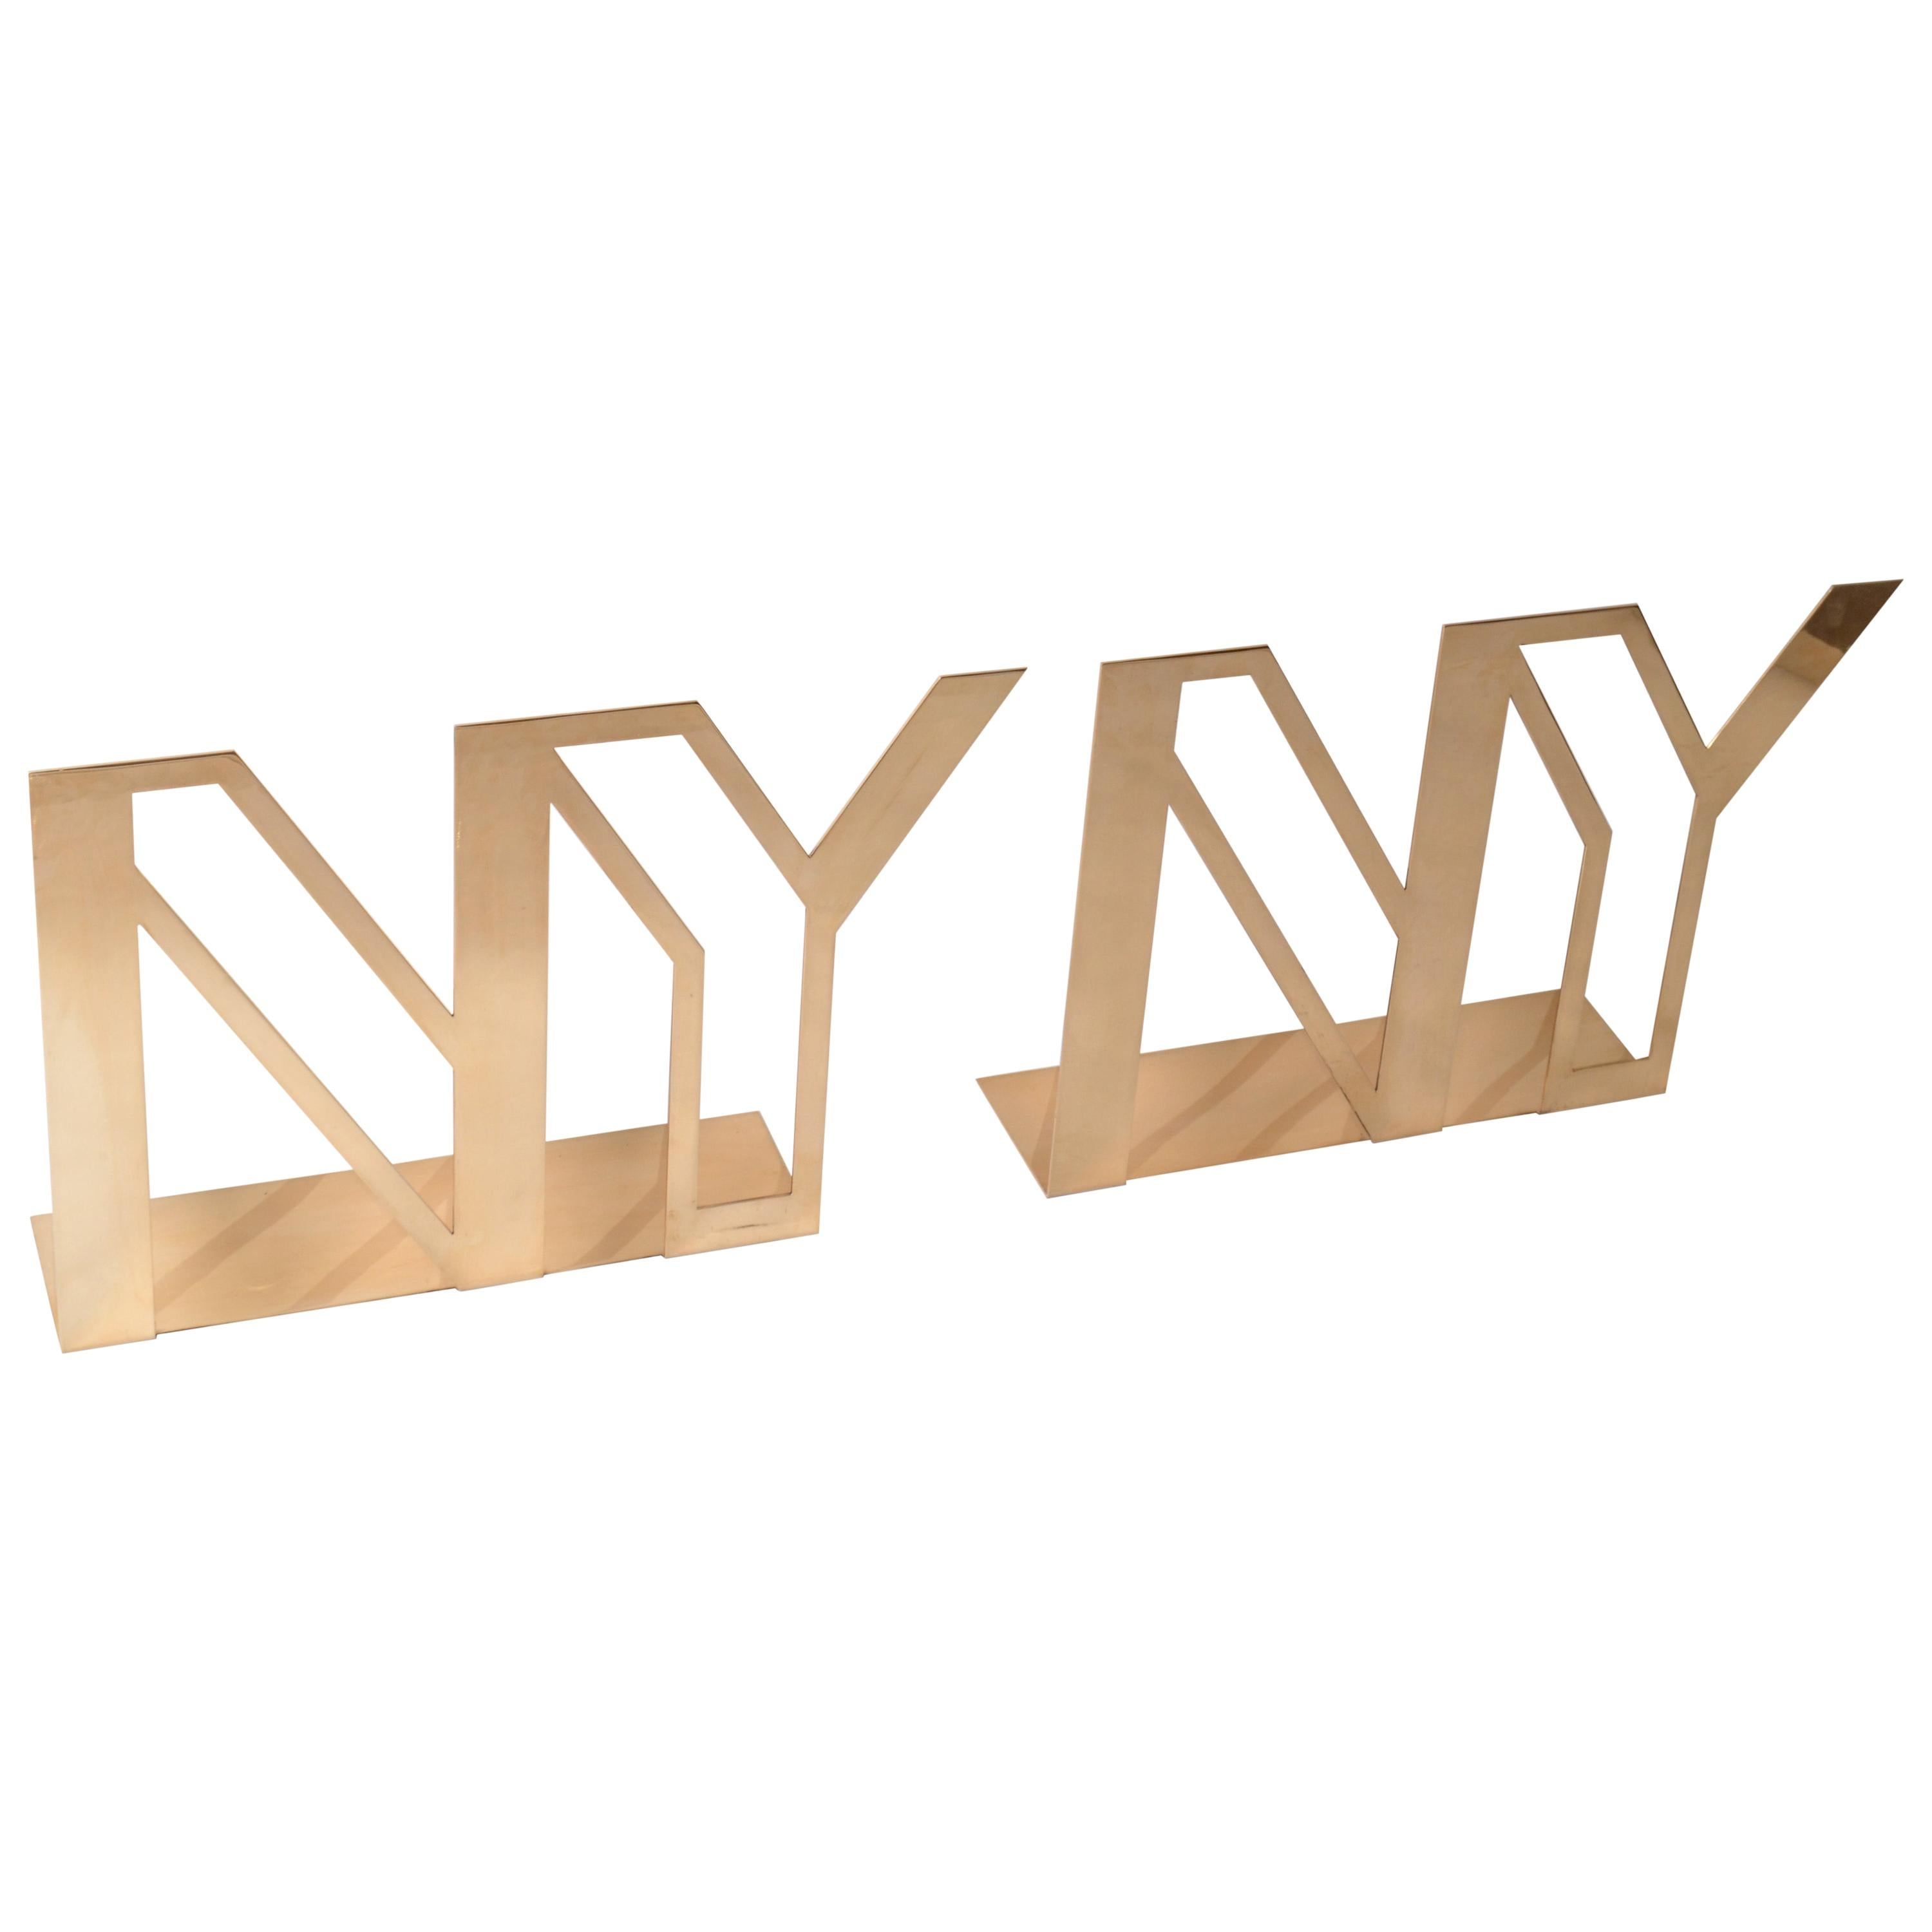 Mid-Century Modern Polished Brass NY New York Display Sculpture Table Decoration